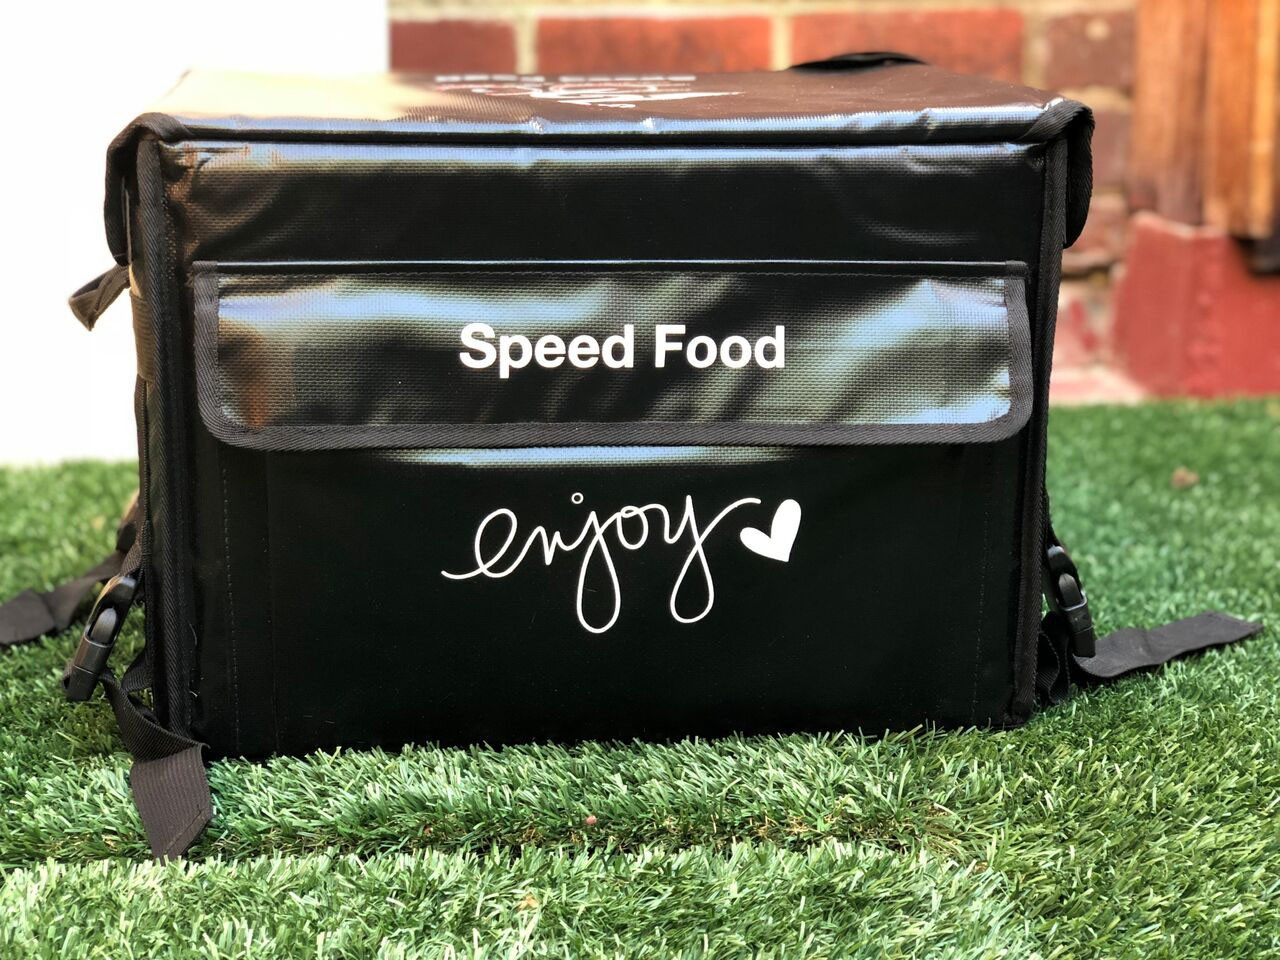 Warm Food delivery bag